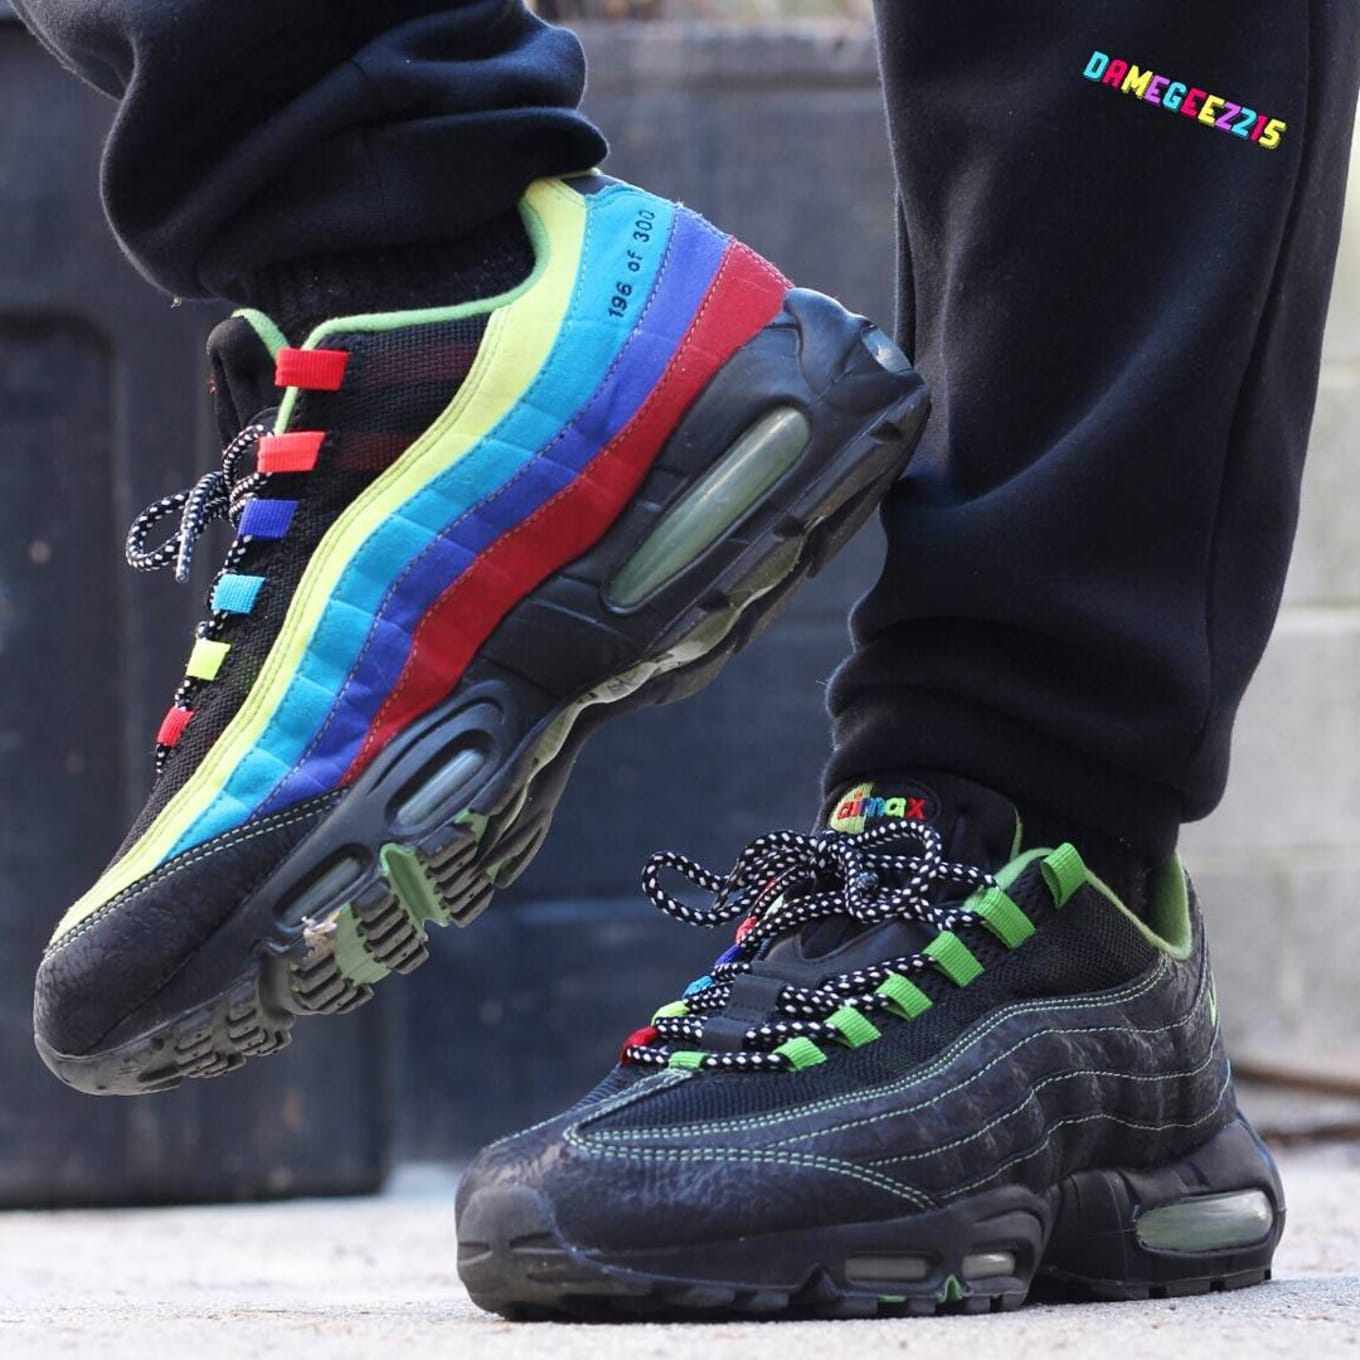 Nike Air Max 95: ''Sole Collector Cowboy Special', Limited